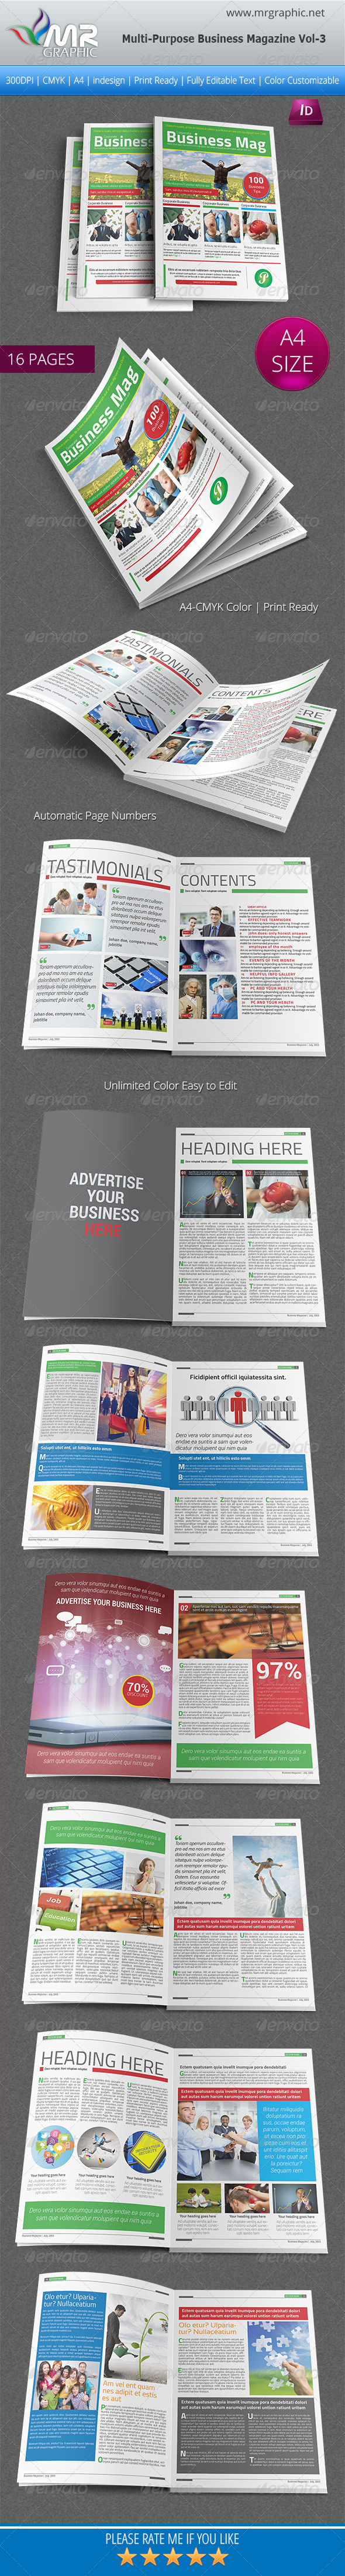 Multipurpose Business Magazine Vol 3 - Magazines Print Templates